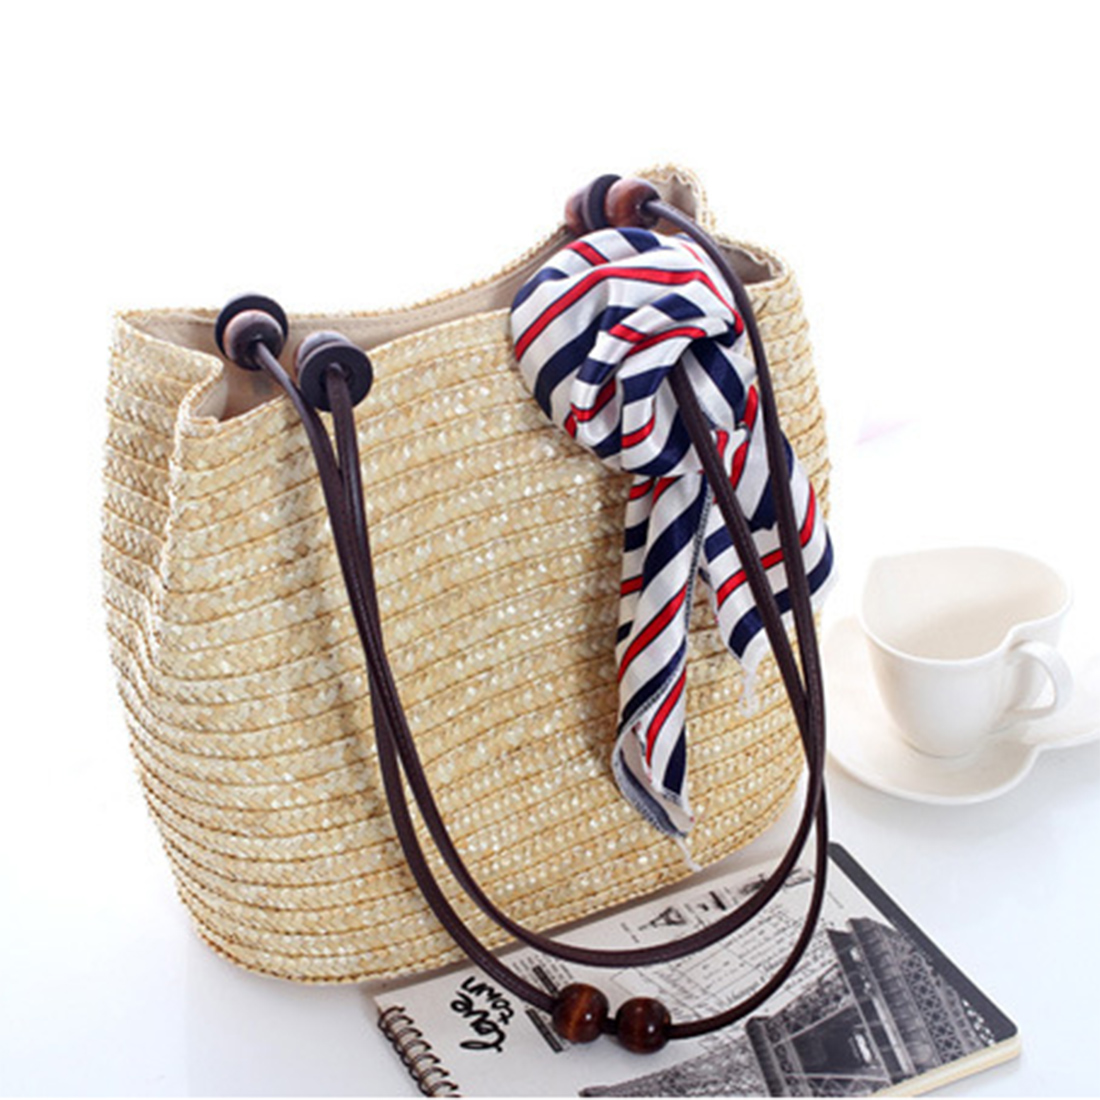 3 Color Women Hand Made Handbags Vintage Style Shoulder Bag Wooden Beads Decoration Wheat Grass Bag Beach Messenger Bag Hot Sale